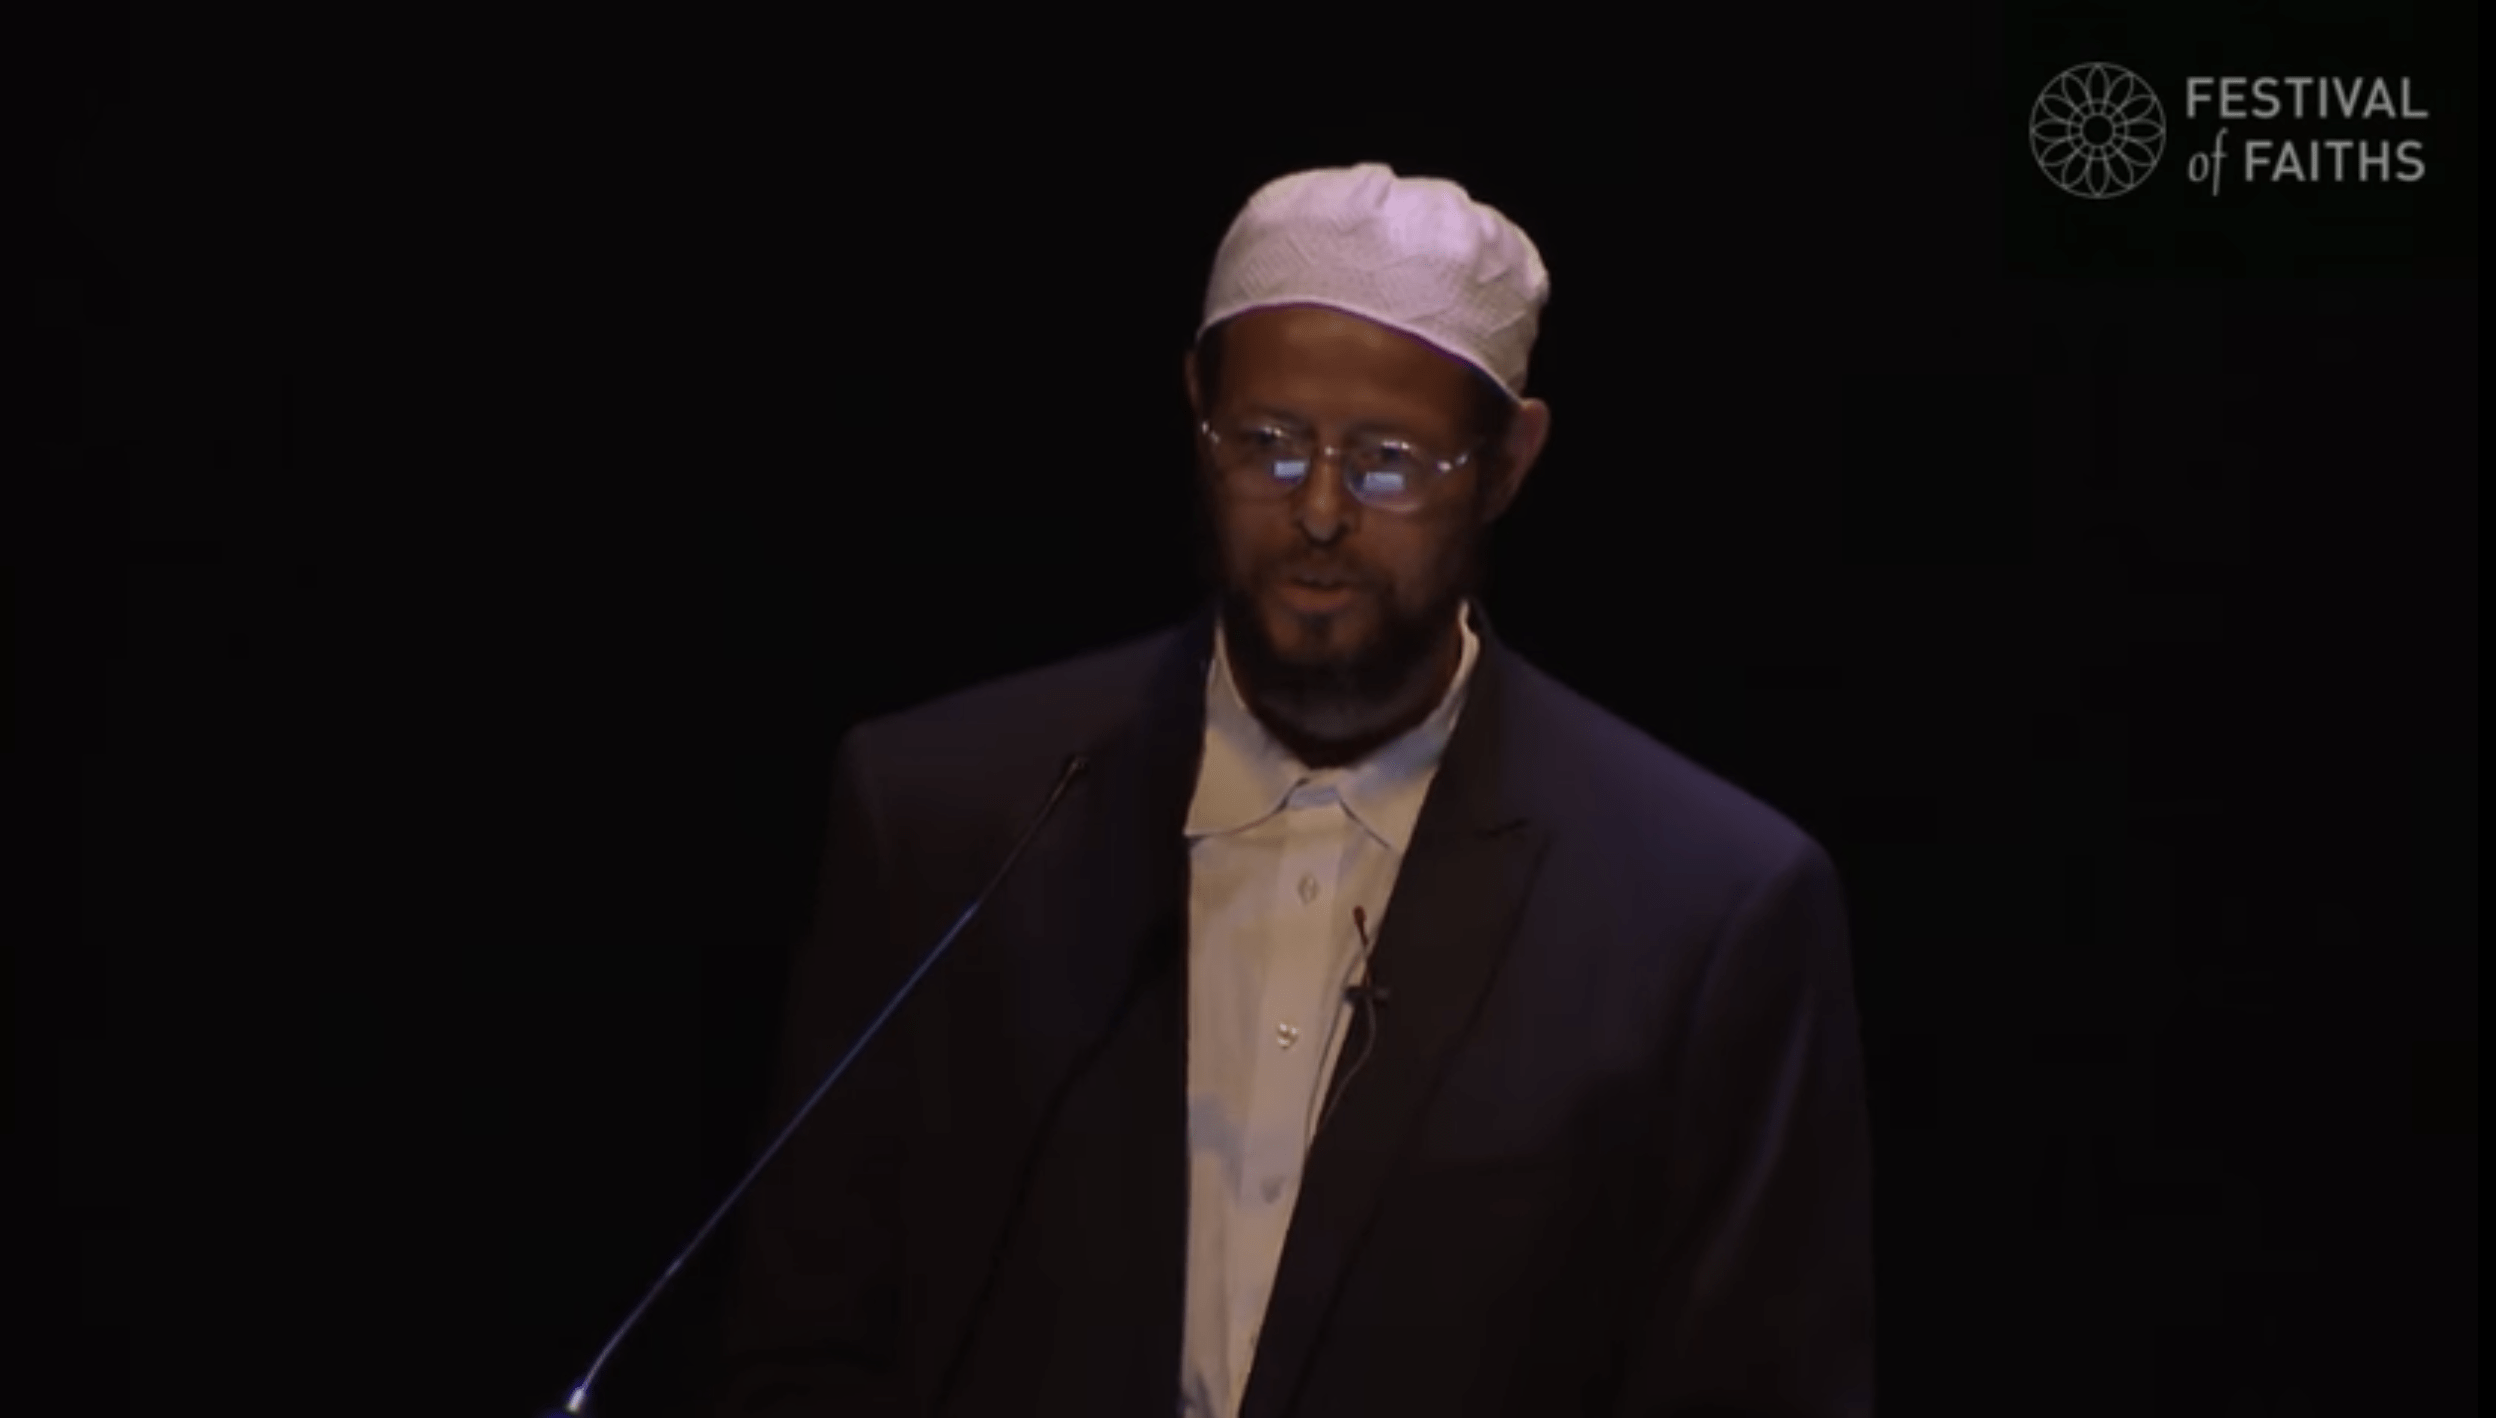 Zaid Shakir – Face to Face with Islamophobia